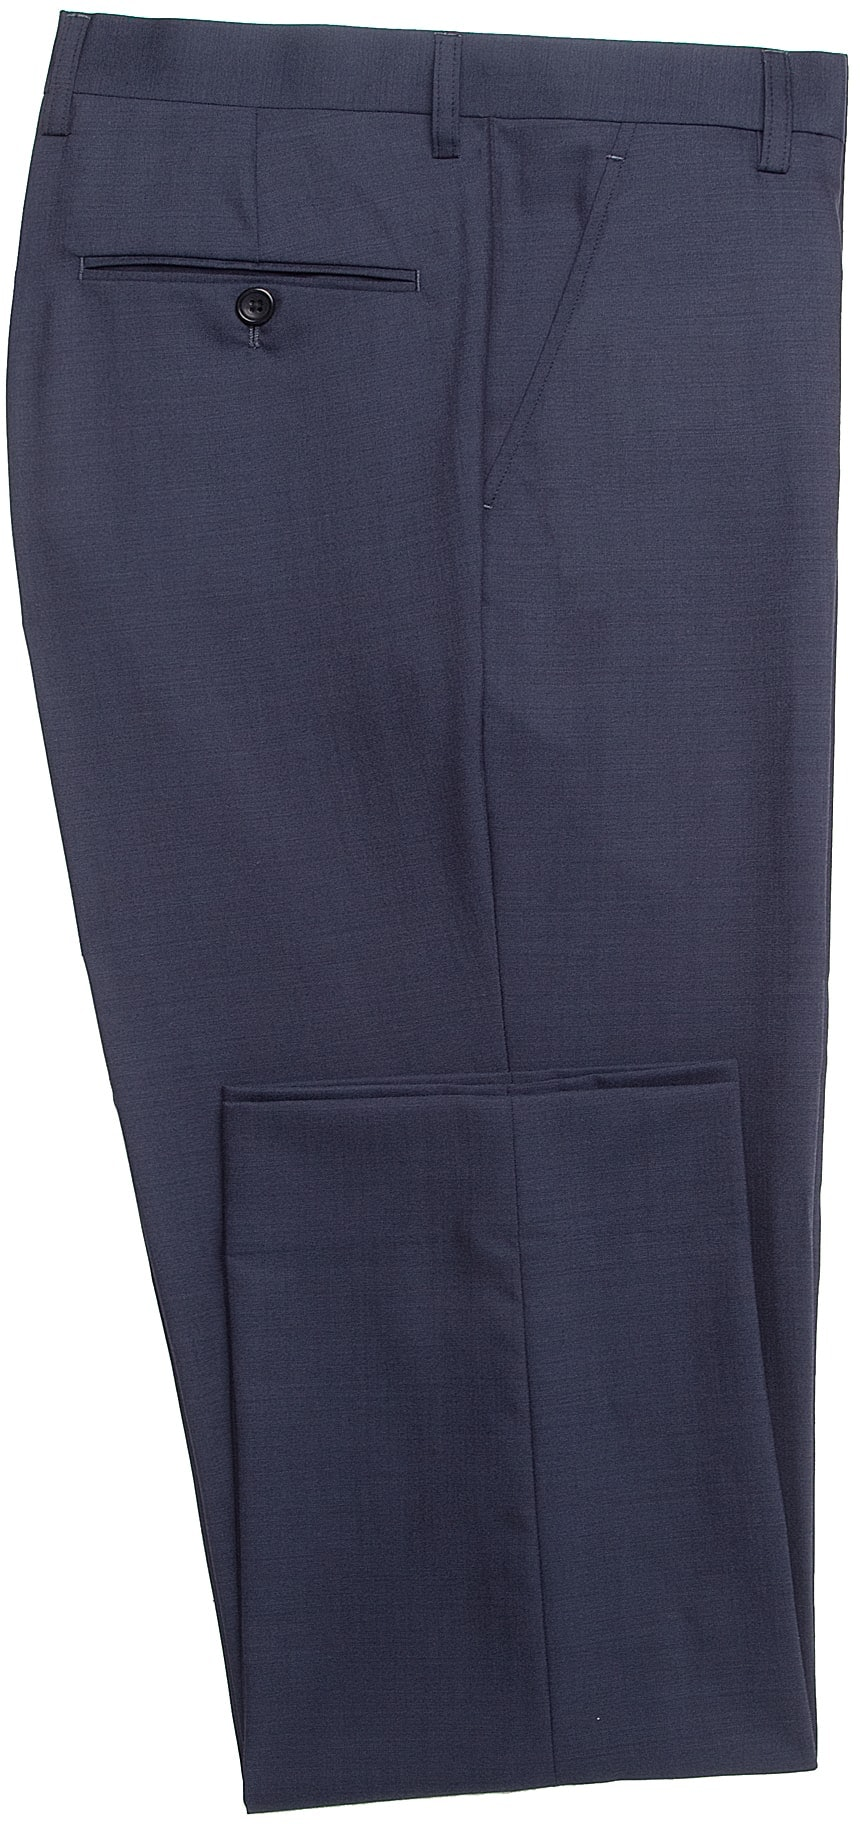 InStitchu Collection The Avalon Navy Plain Pants